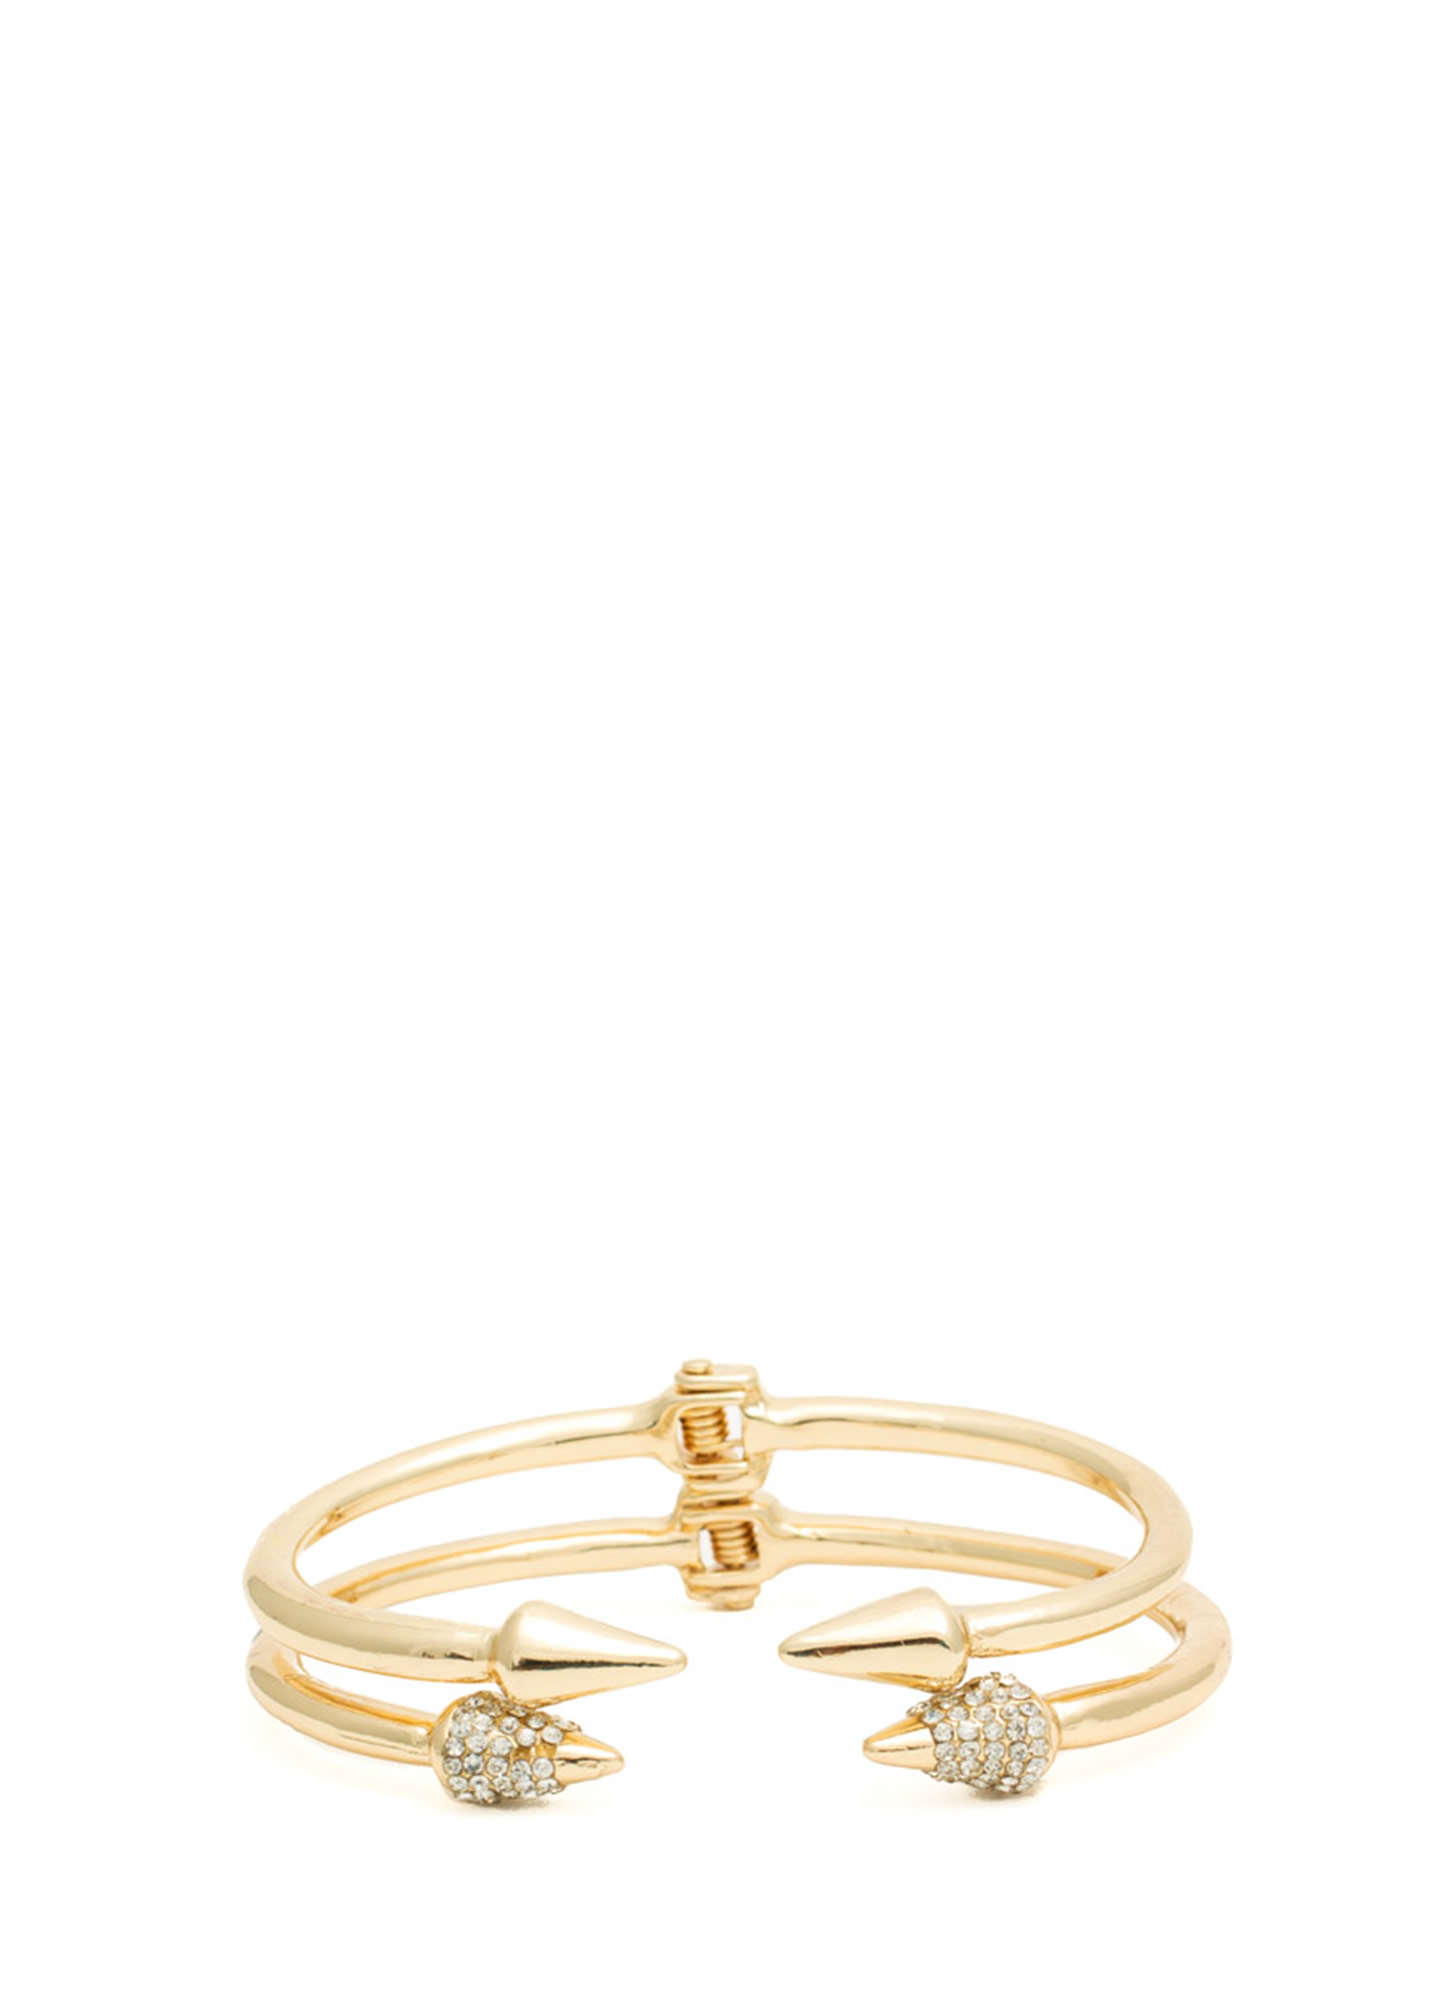 Spiked Bracelet Duo GOLD